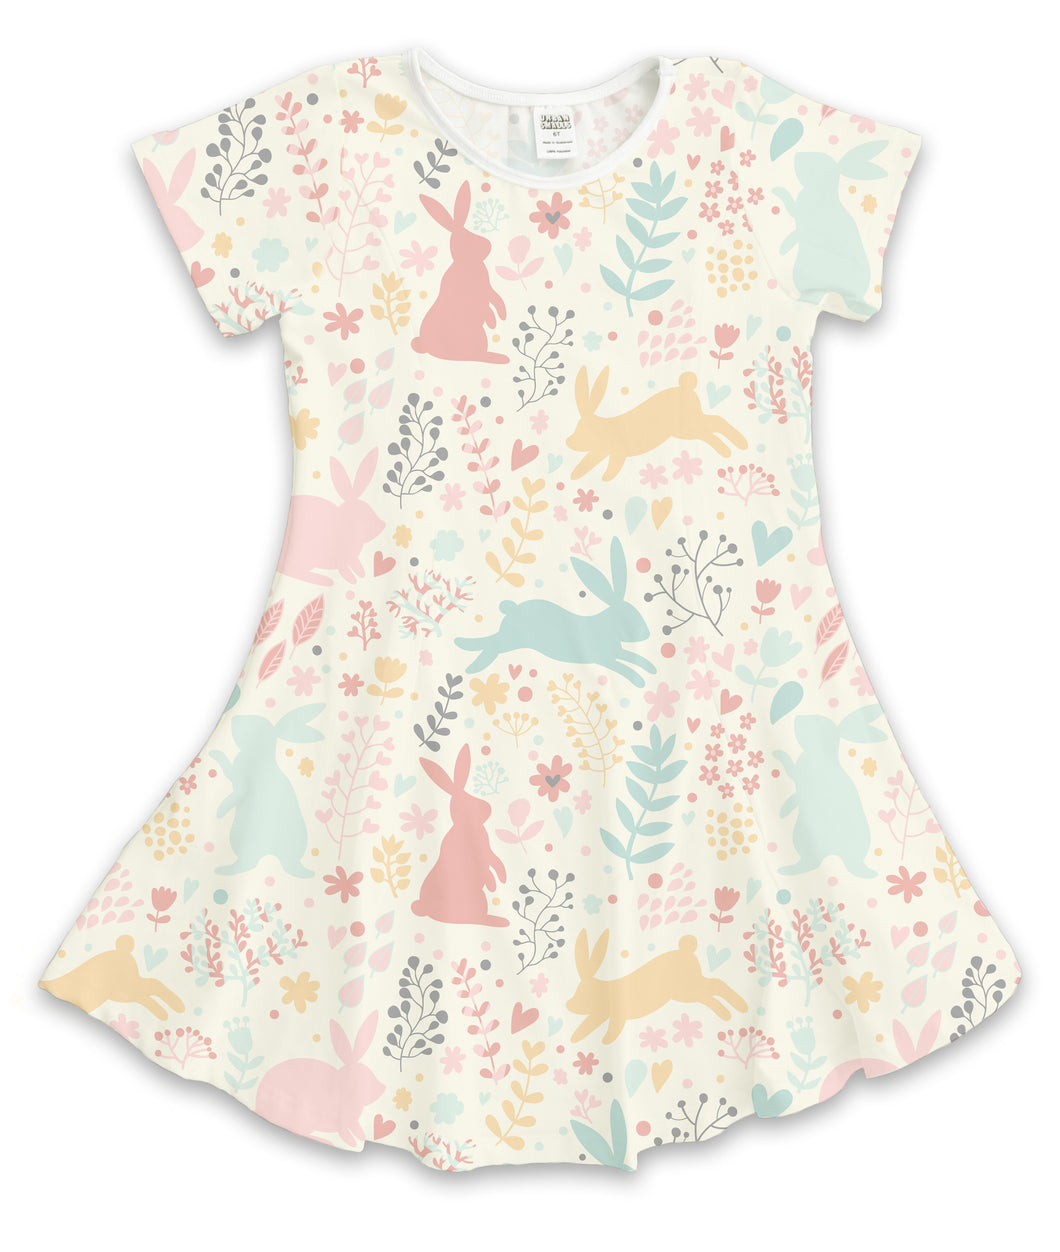 Cream & Pink Fanciful Bunnies Sublimated Fit & Flare Dress